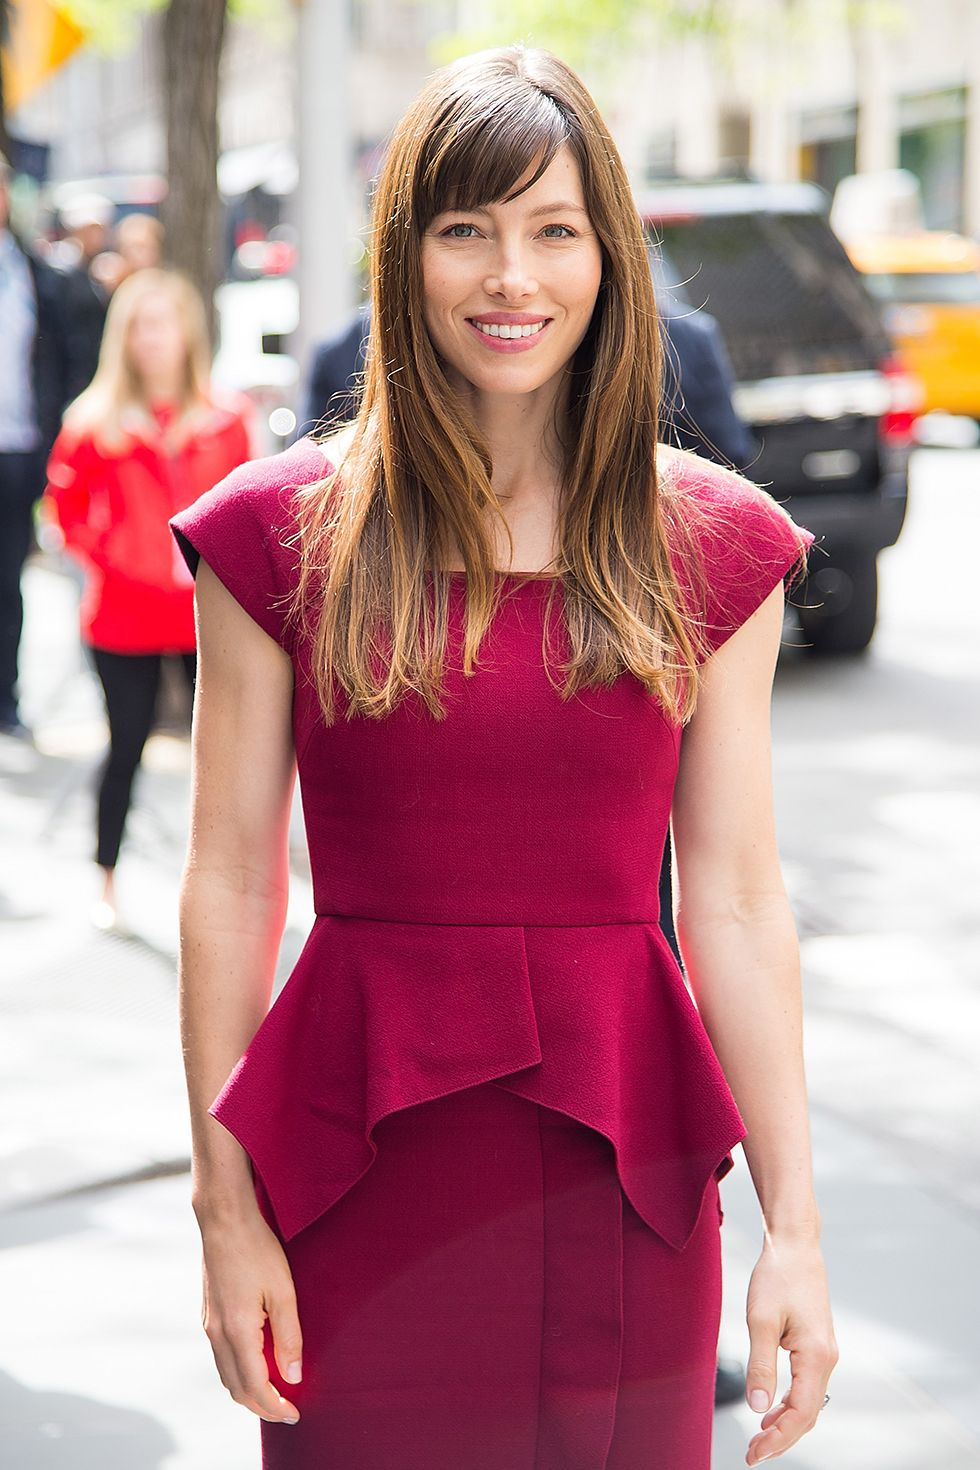 Jessica Biel Says Yoga Helped Her Find Herself In Her 20s